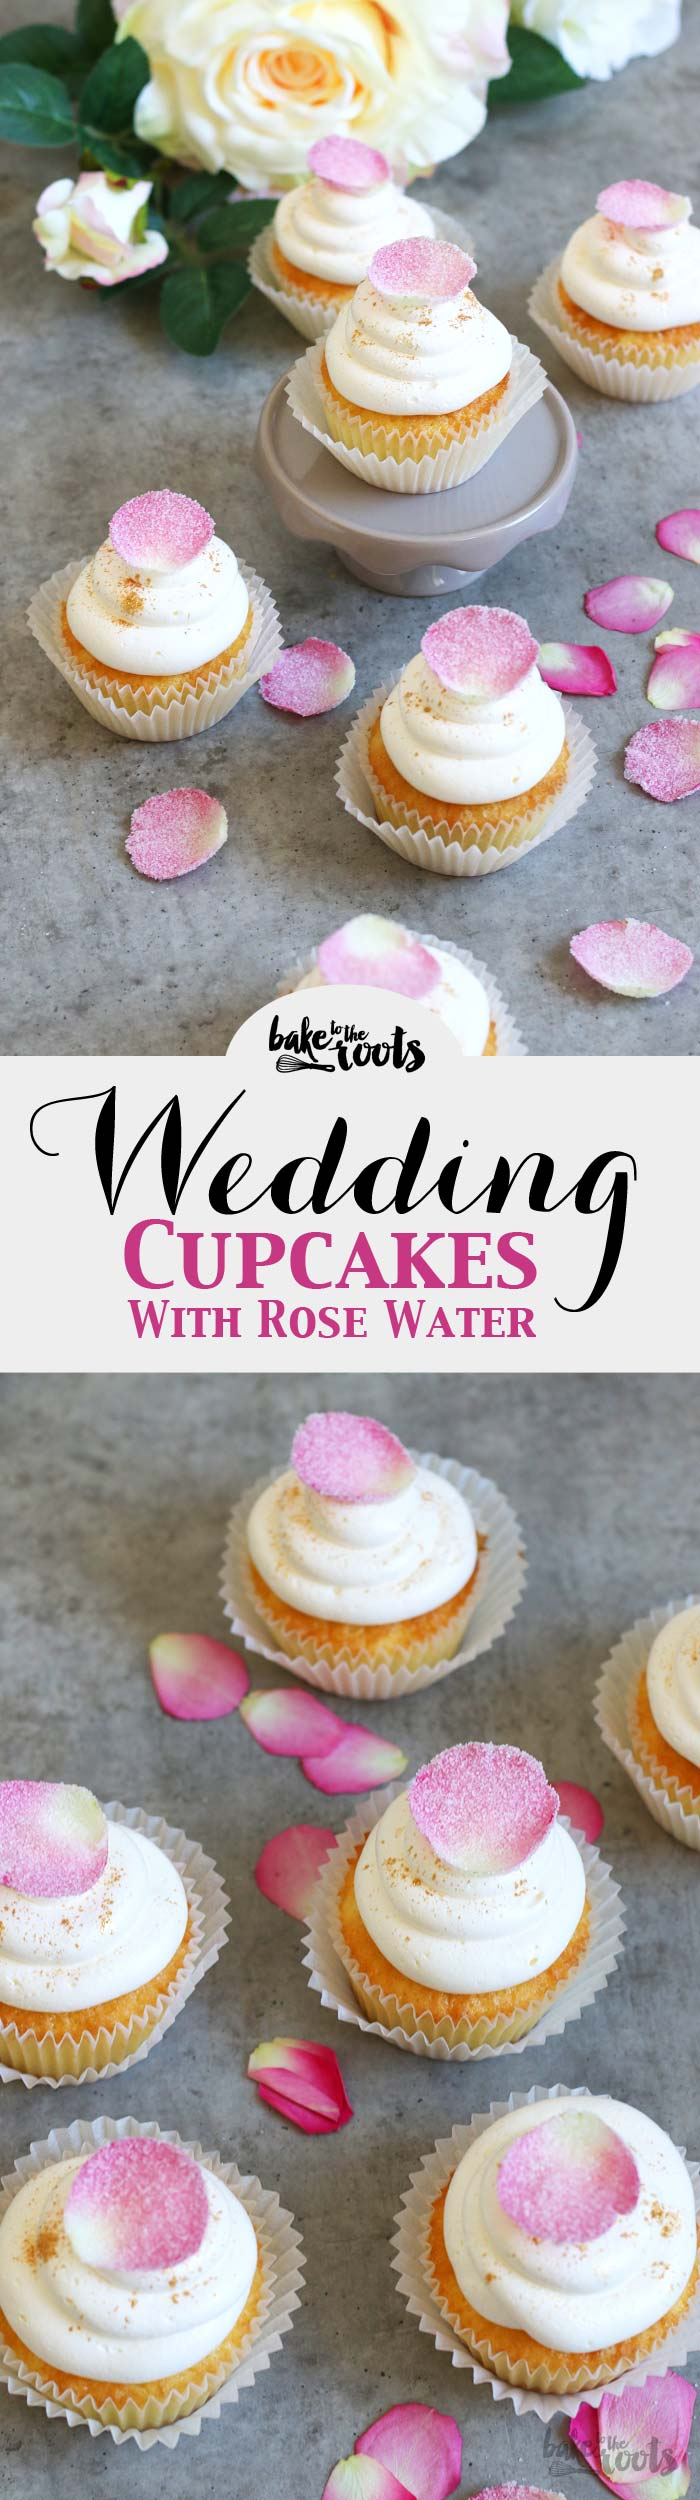 Wedding Cupcakes with Rose Water | Bake to the roots